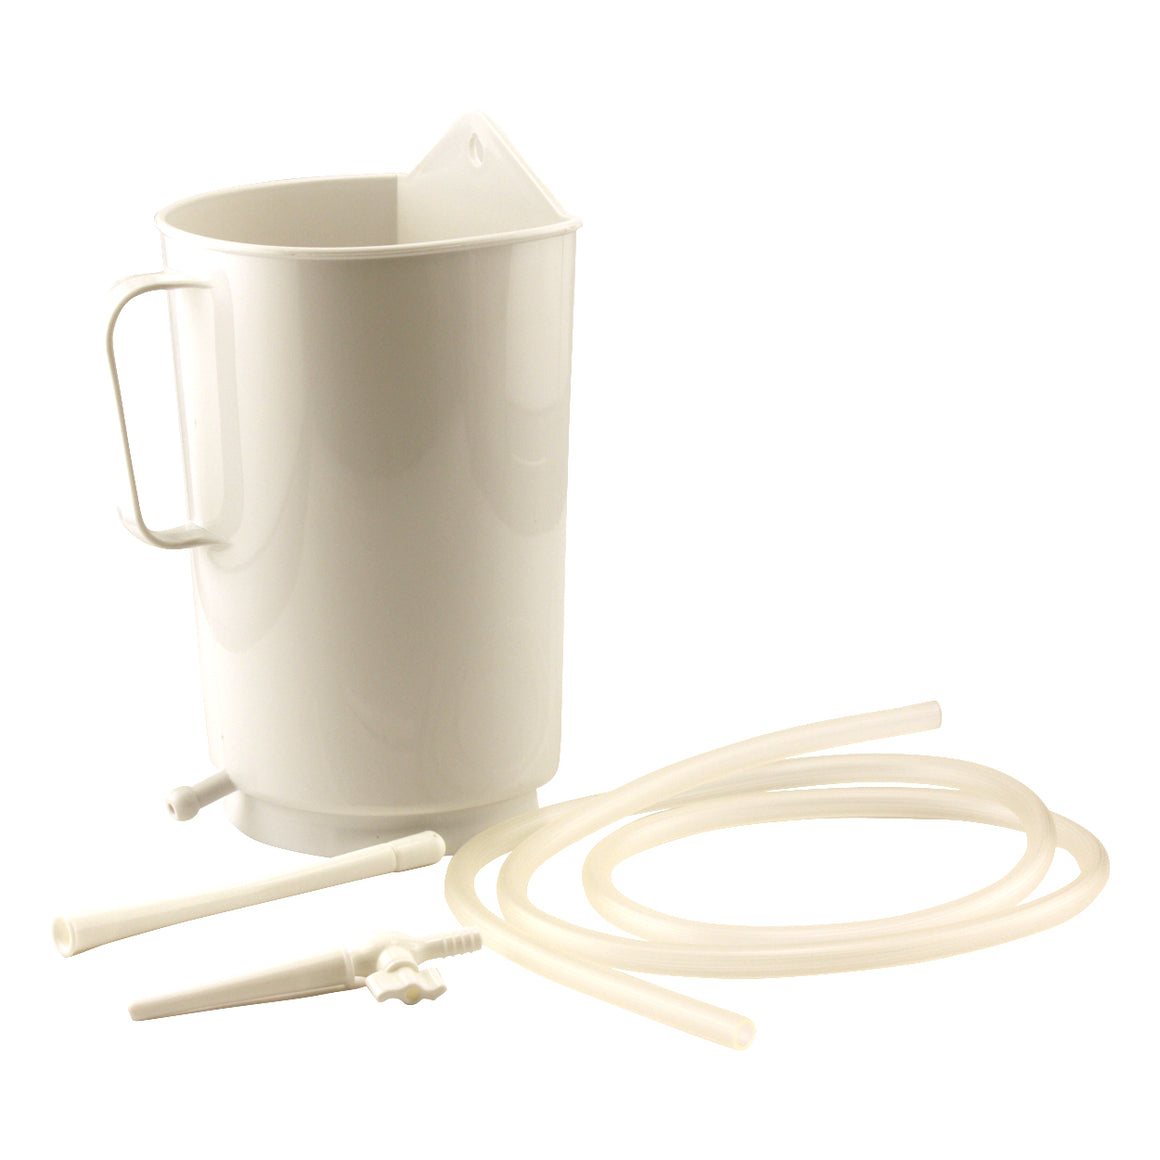 2 Liter Enema Bucket Kit - Reusable